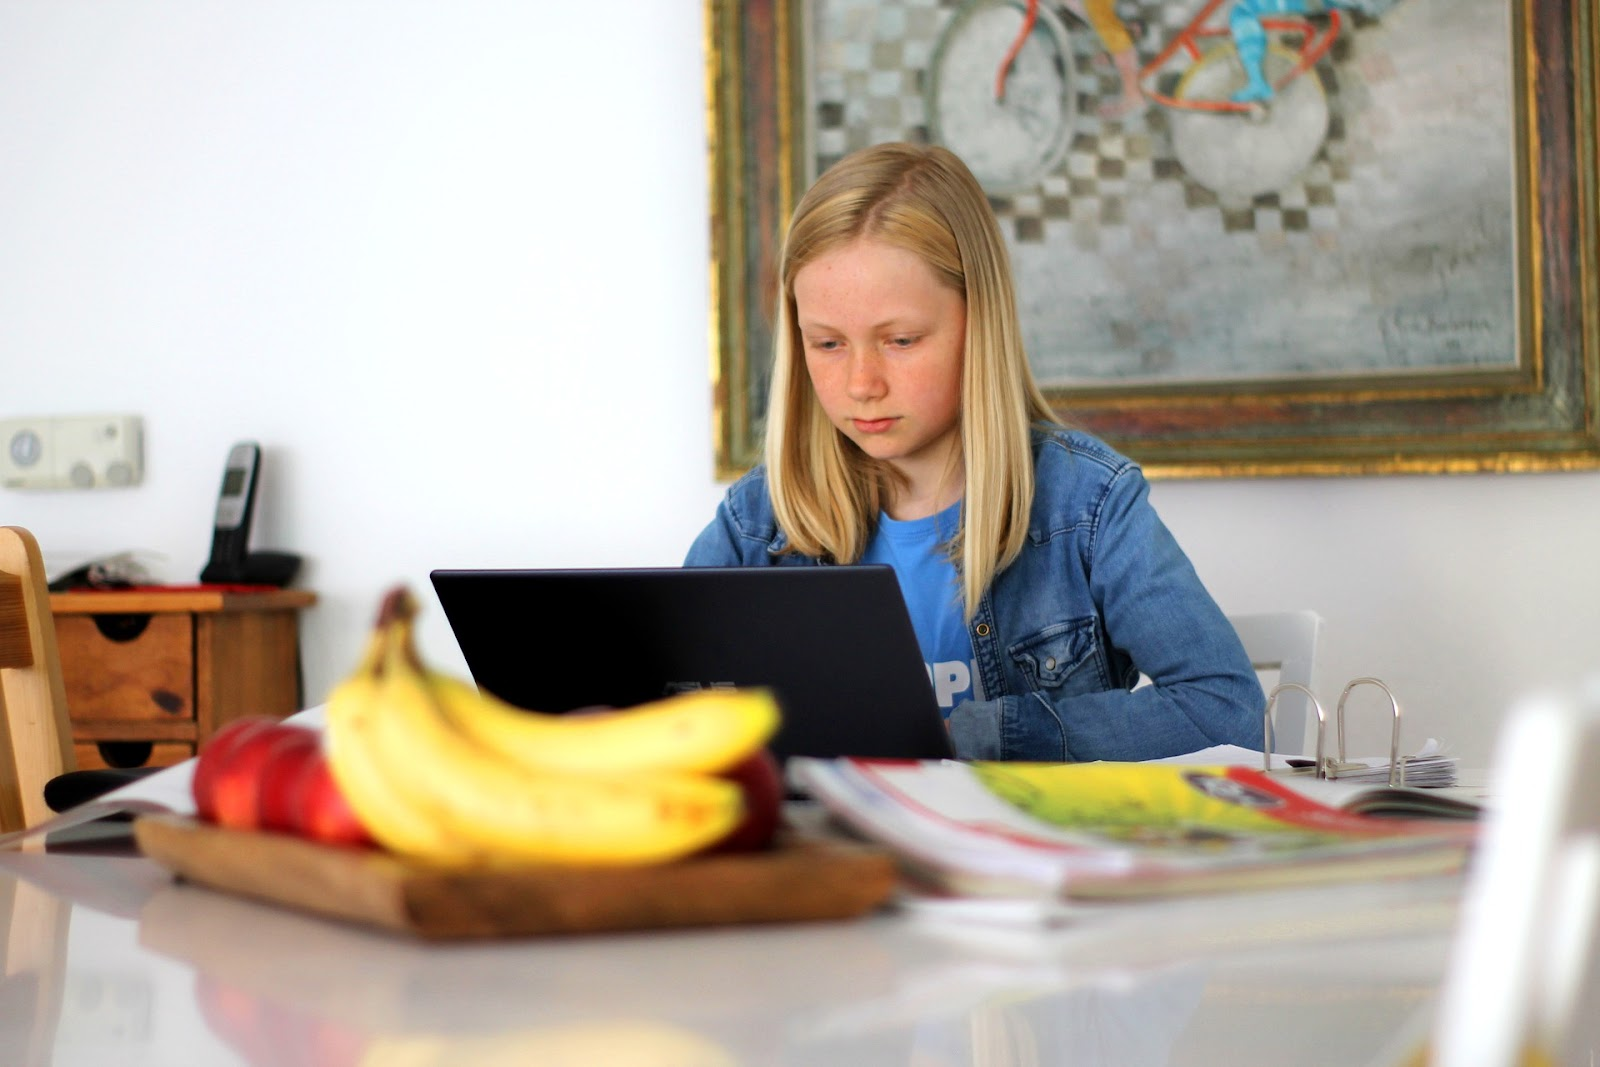 A young, blonde haired girl sits in her kitchen with a binder of curriculum and a laptop. She is concentrating on the laptop screen. There is fruit on the kitchen island.